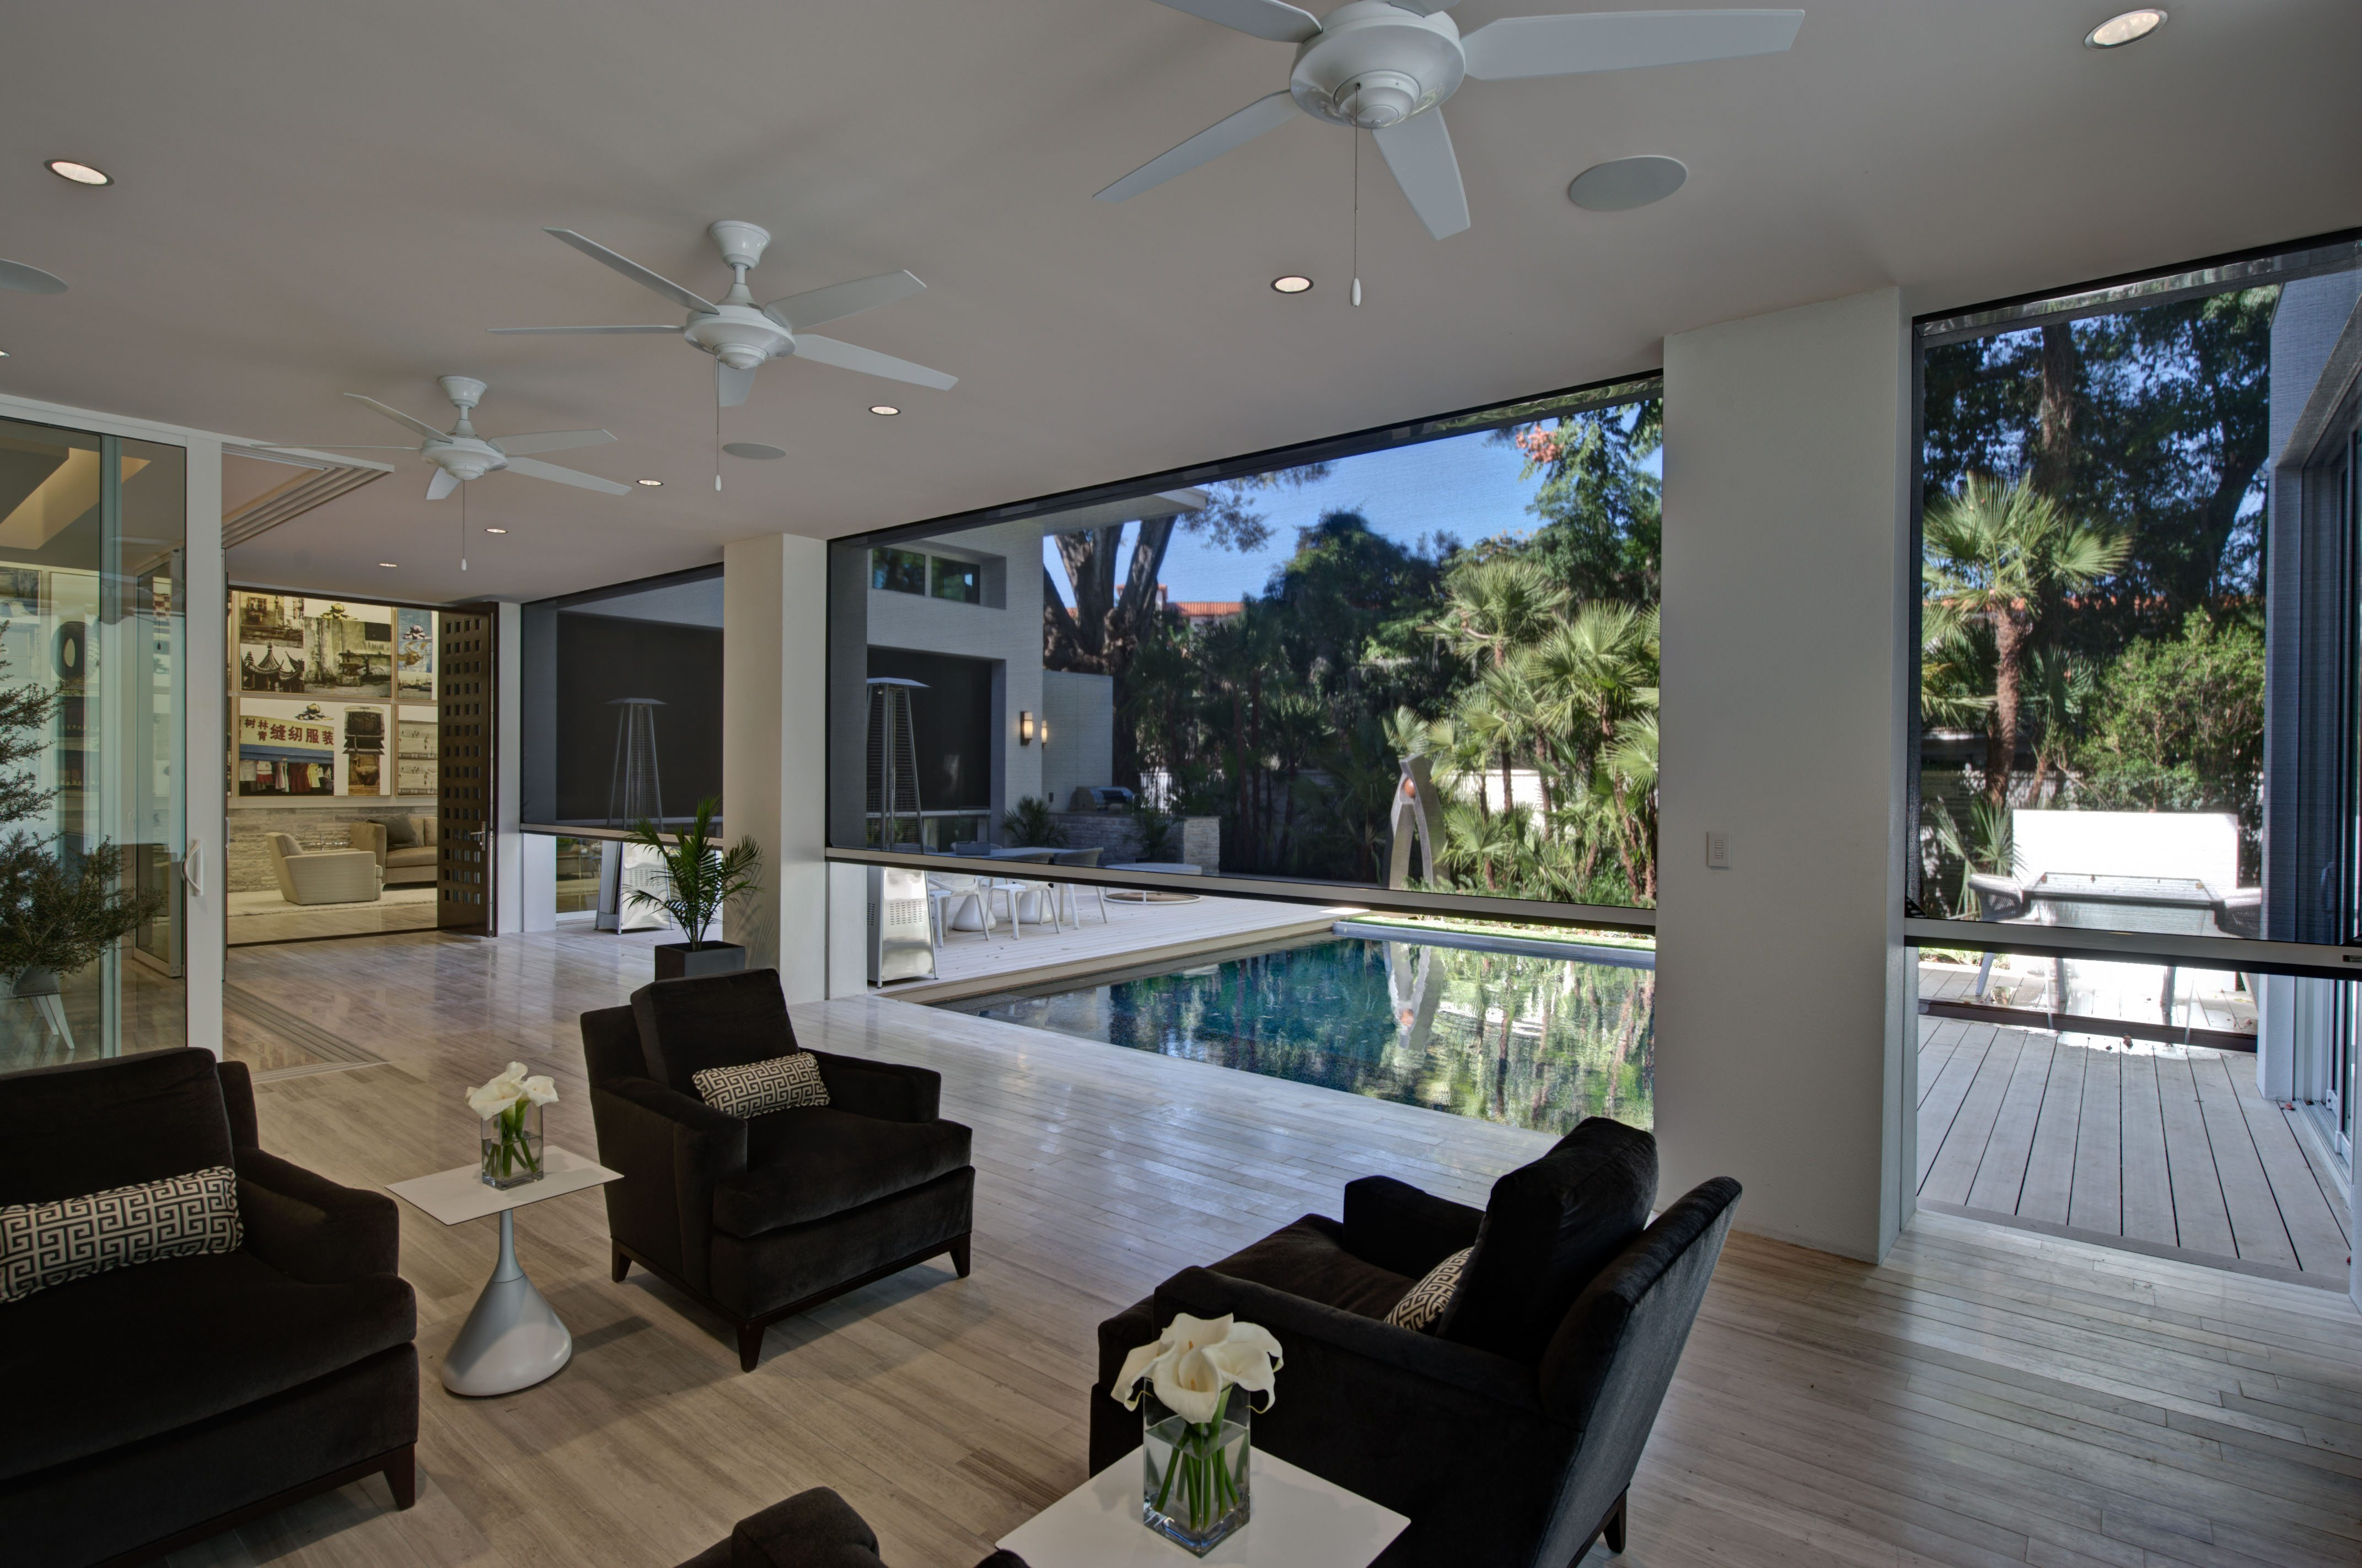 Residential, smart home, home automation, security systems, home theater, lighting control, energy management